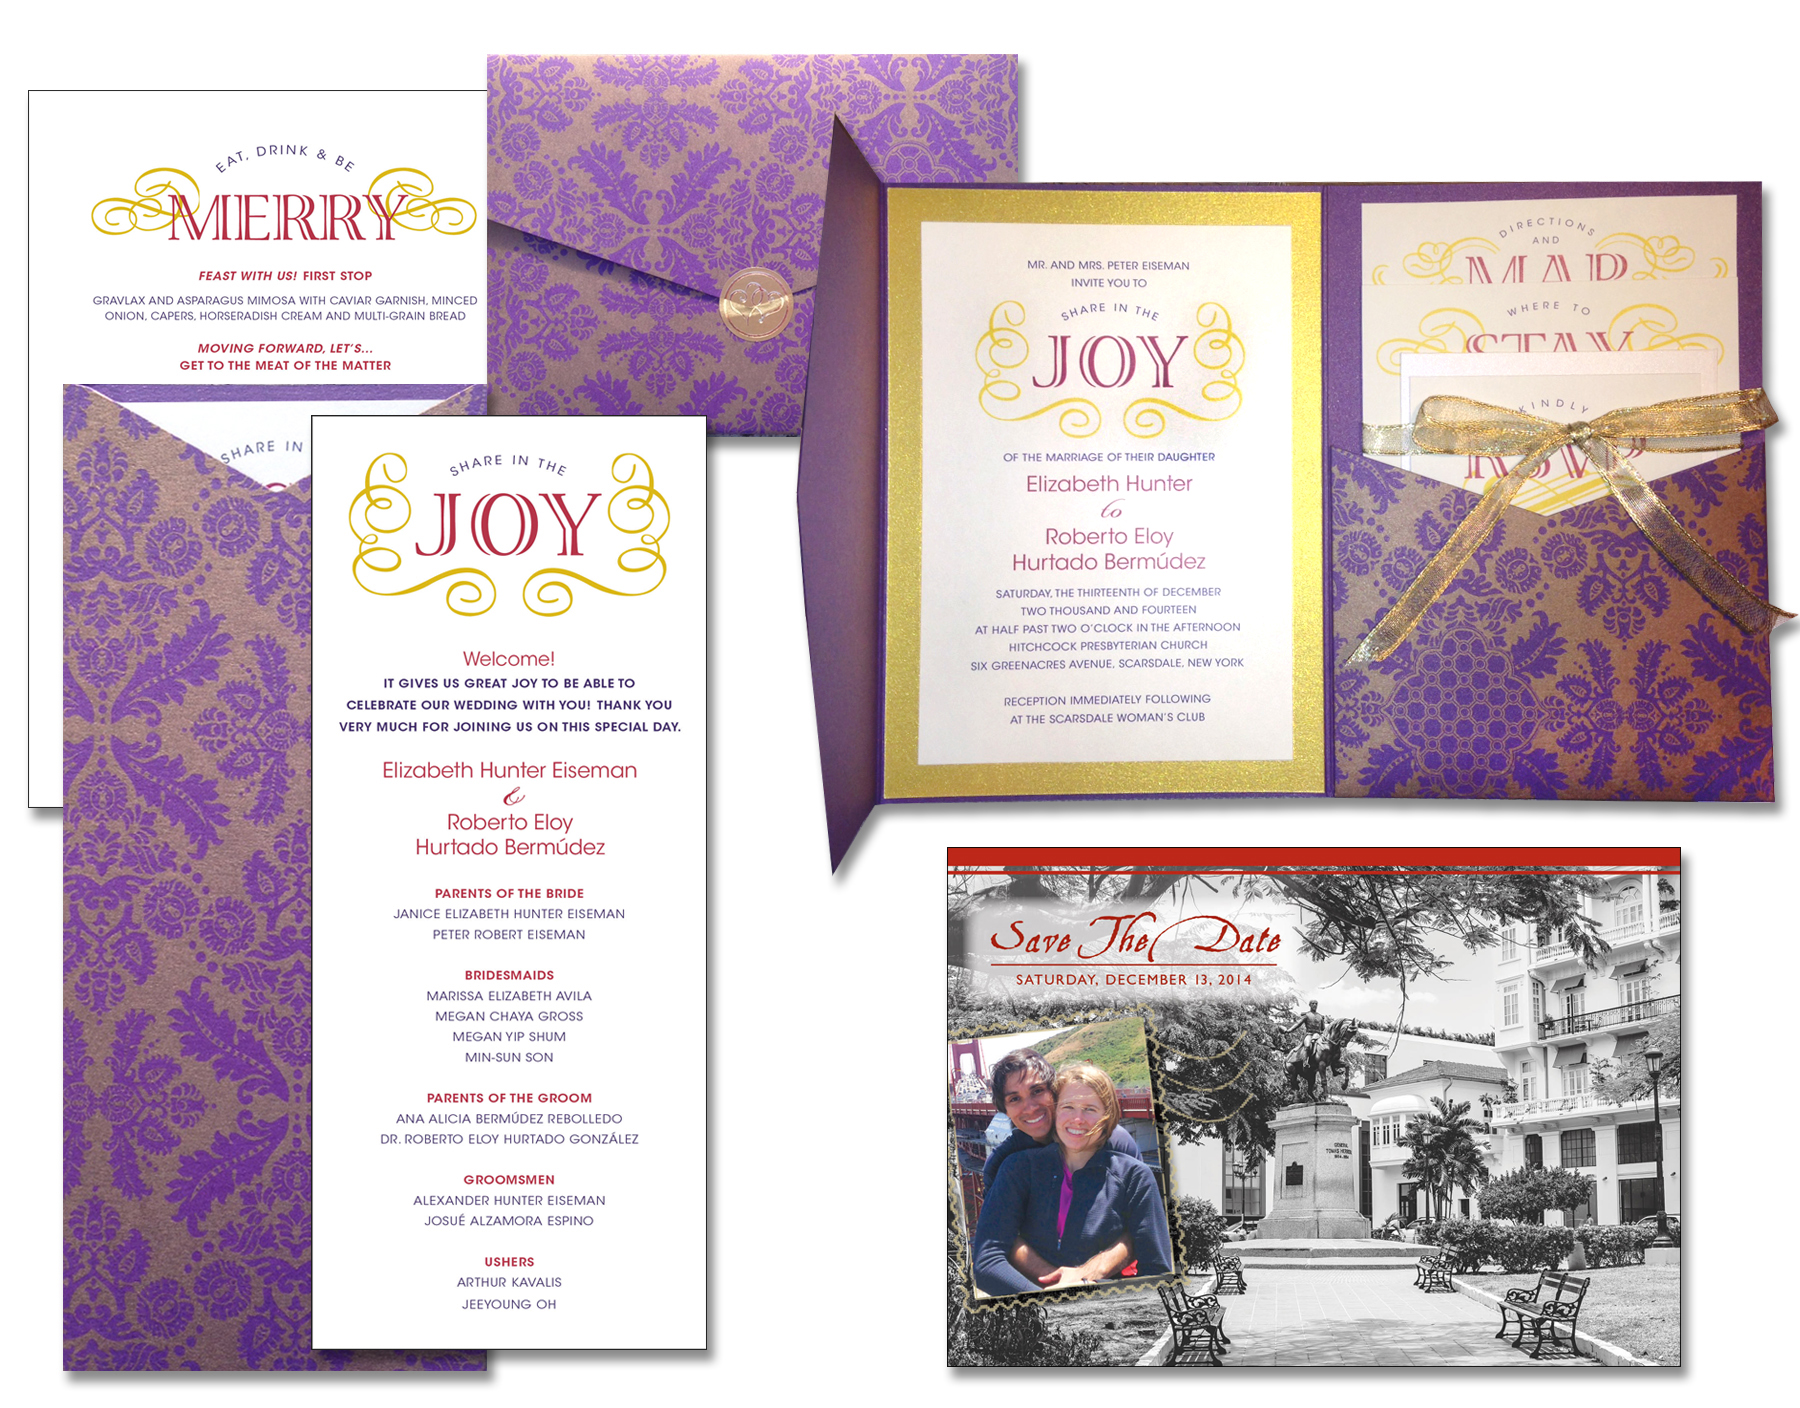 The custom-made, one-of-a-kind wedding materials consisted of the Save The Date postcard, the wedding invitation (with two inserts and the response card tied with a ribbon), the wedding program as well as menu cards – beautifully framed and set at each table for the guests.